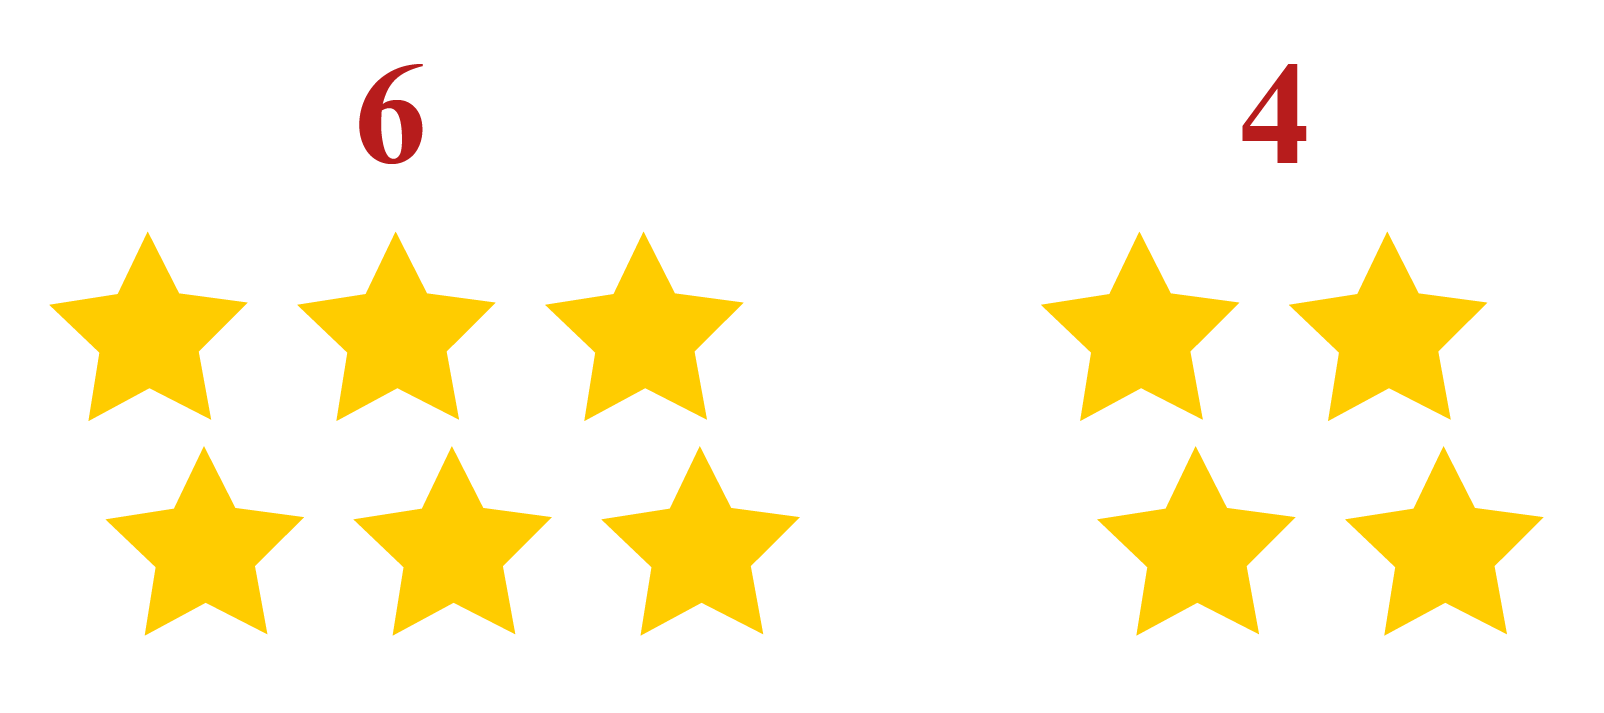 Examples to understand the Greater Than Sign - There are 6 stars on one side and 4 stars on the other side.